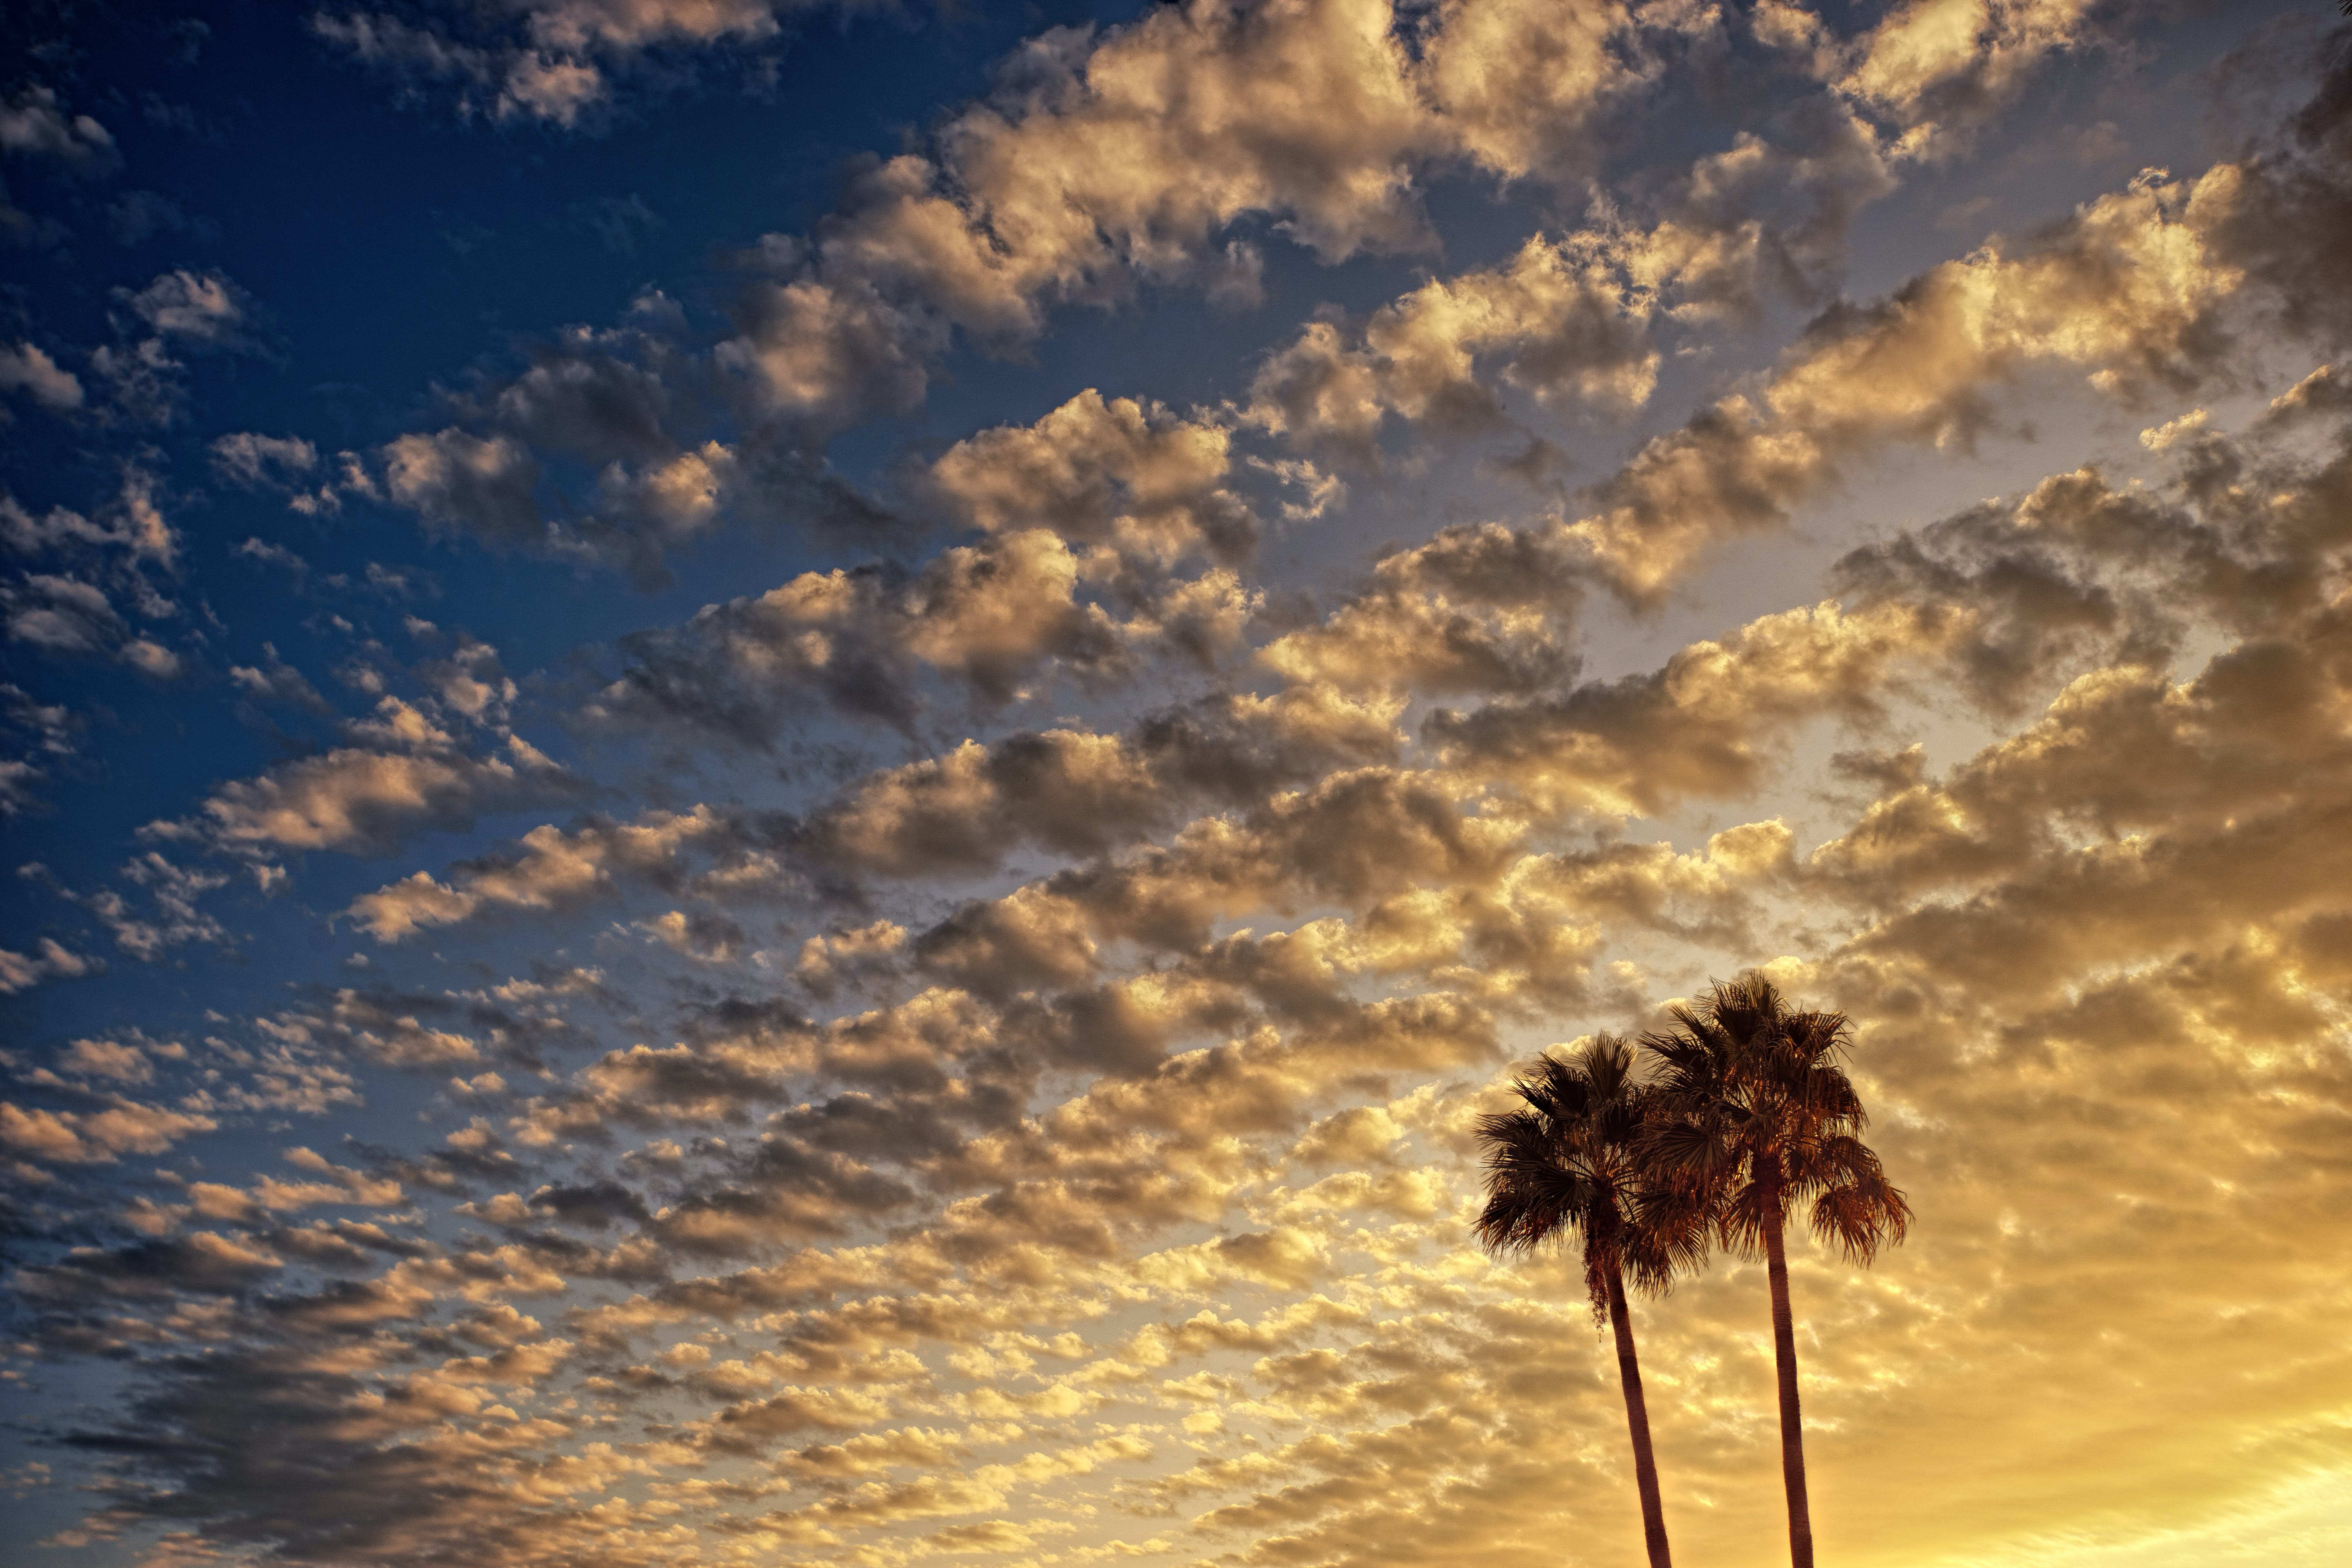 Low Angle Photography of Palm Tree Under Cloudy Sky during Golden Hour